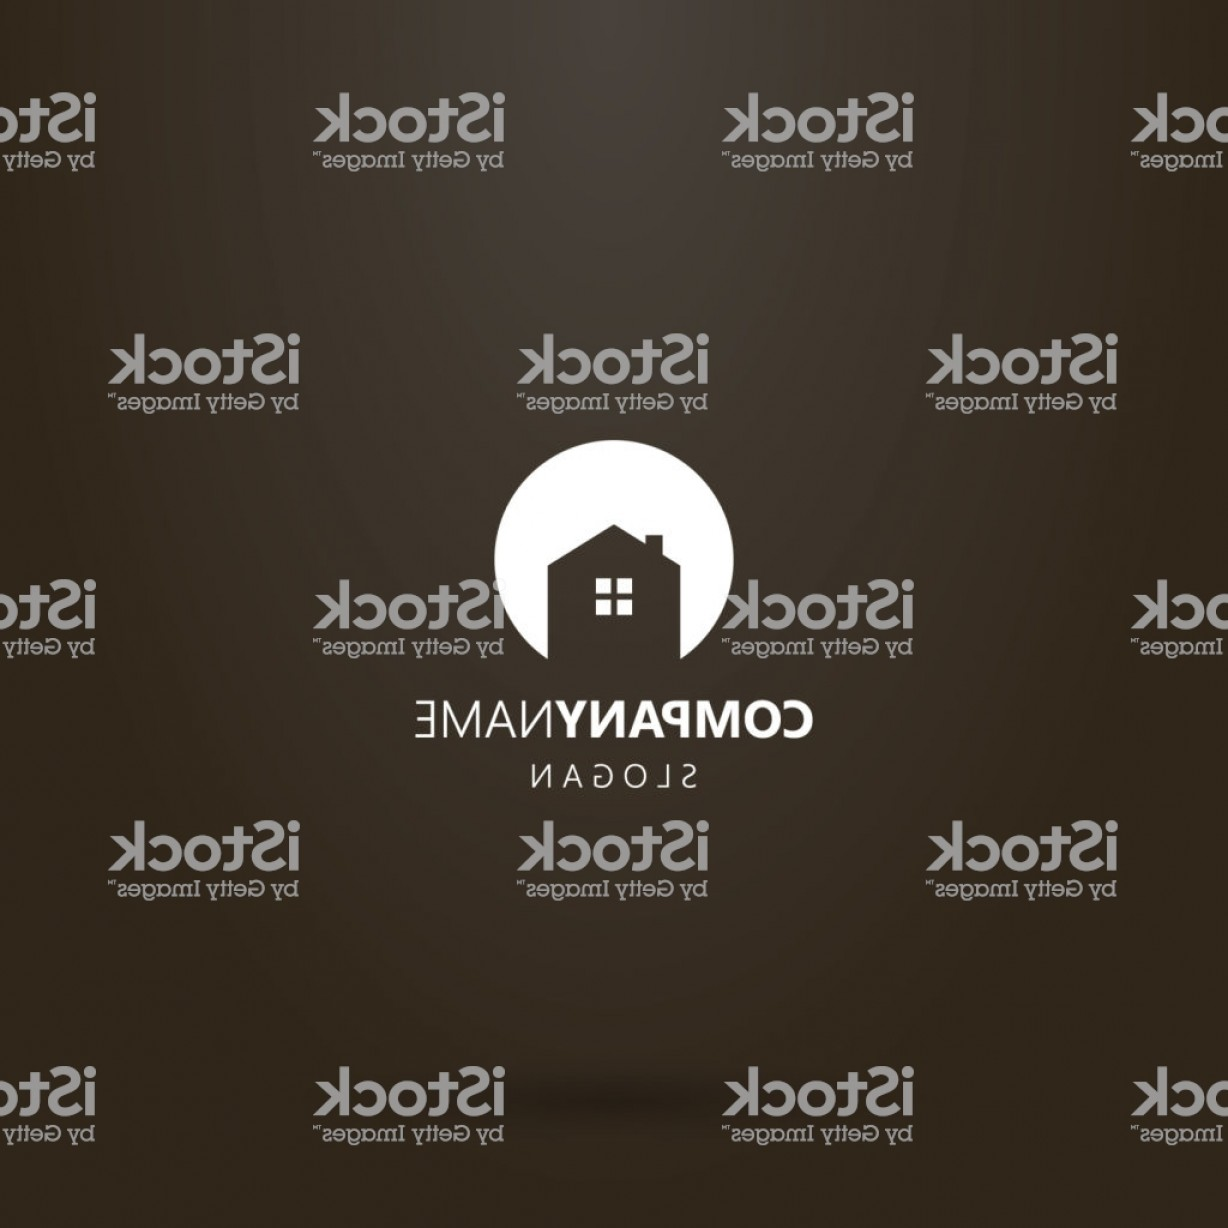 Art Space Logo Vector: Flat Art Vector Round Negative Space Logo Of A Private House Gm